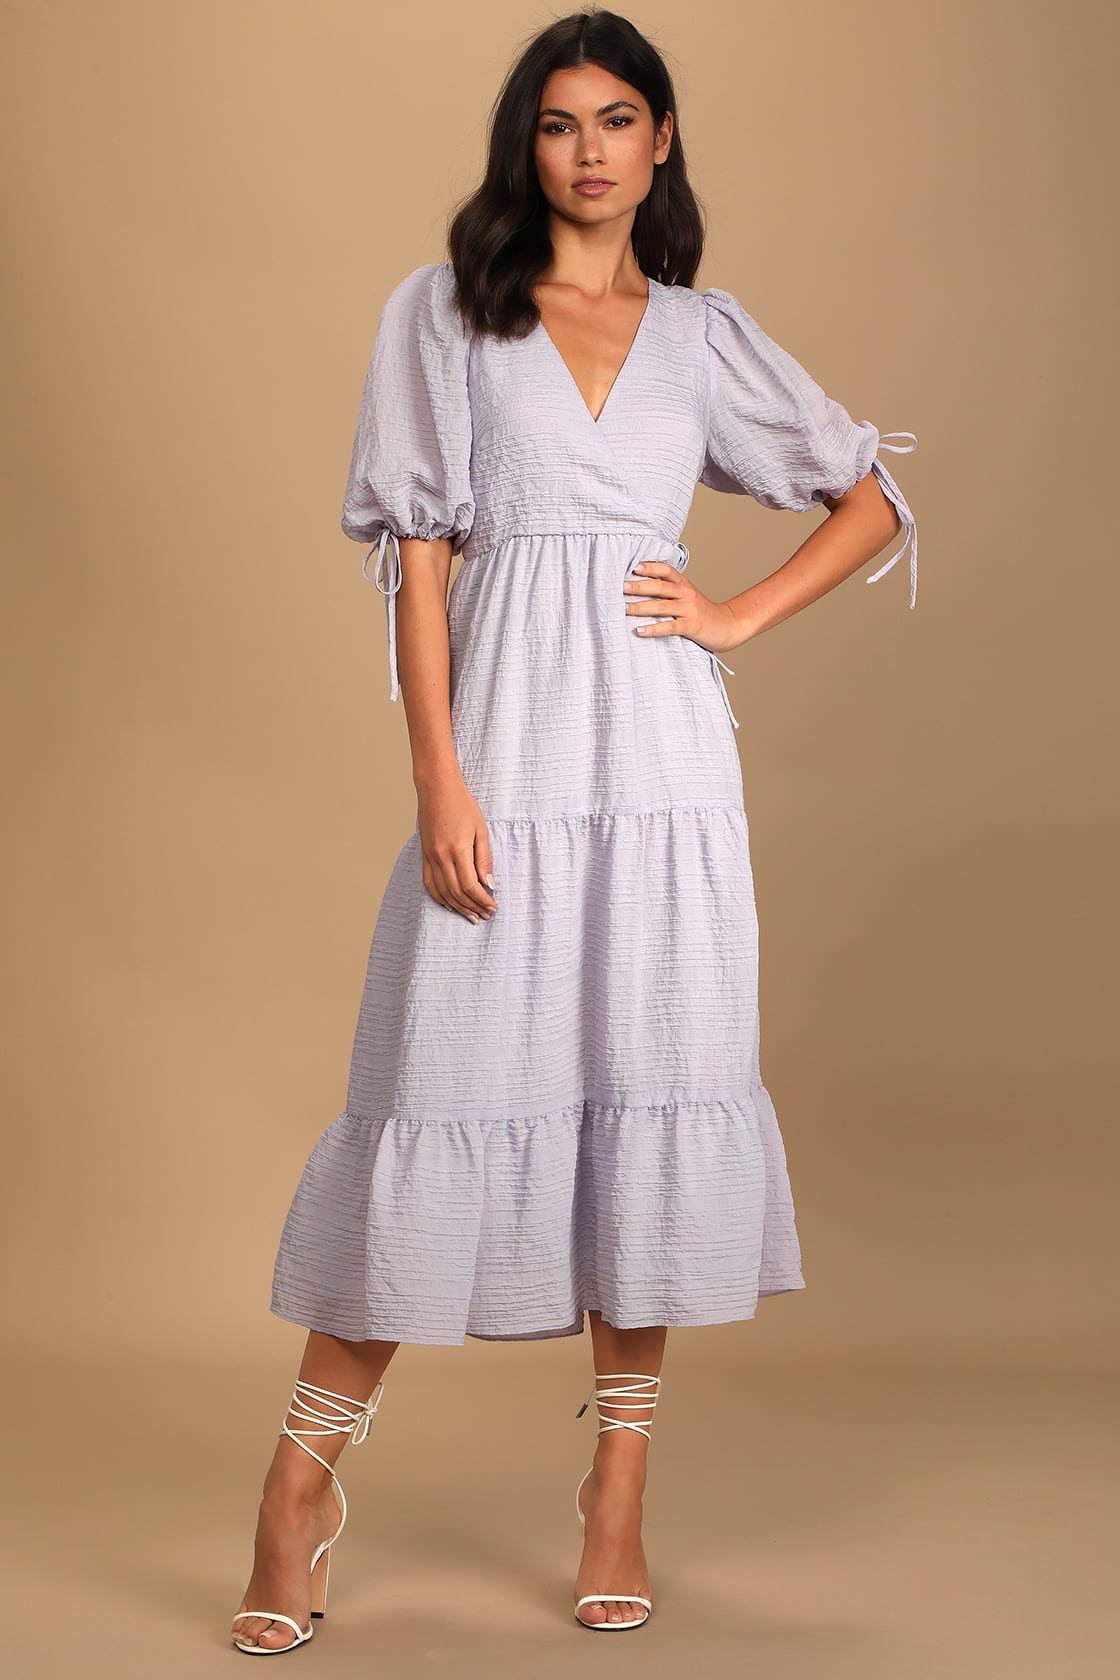 Lulus Capture Your Heart Lavender Tiered Puff Sleeve Midi Dress